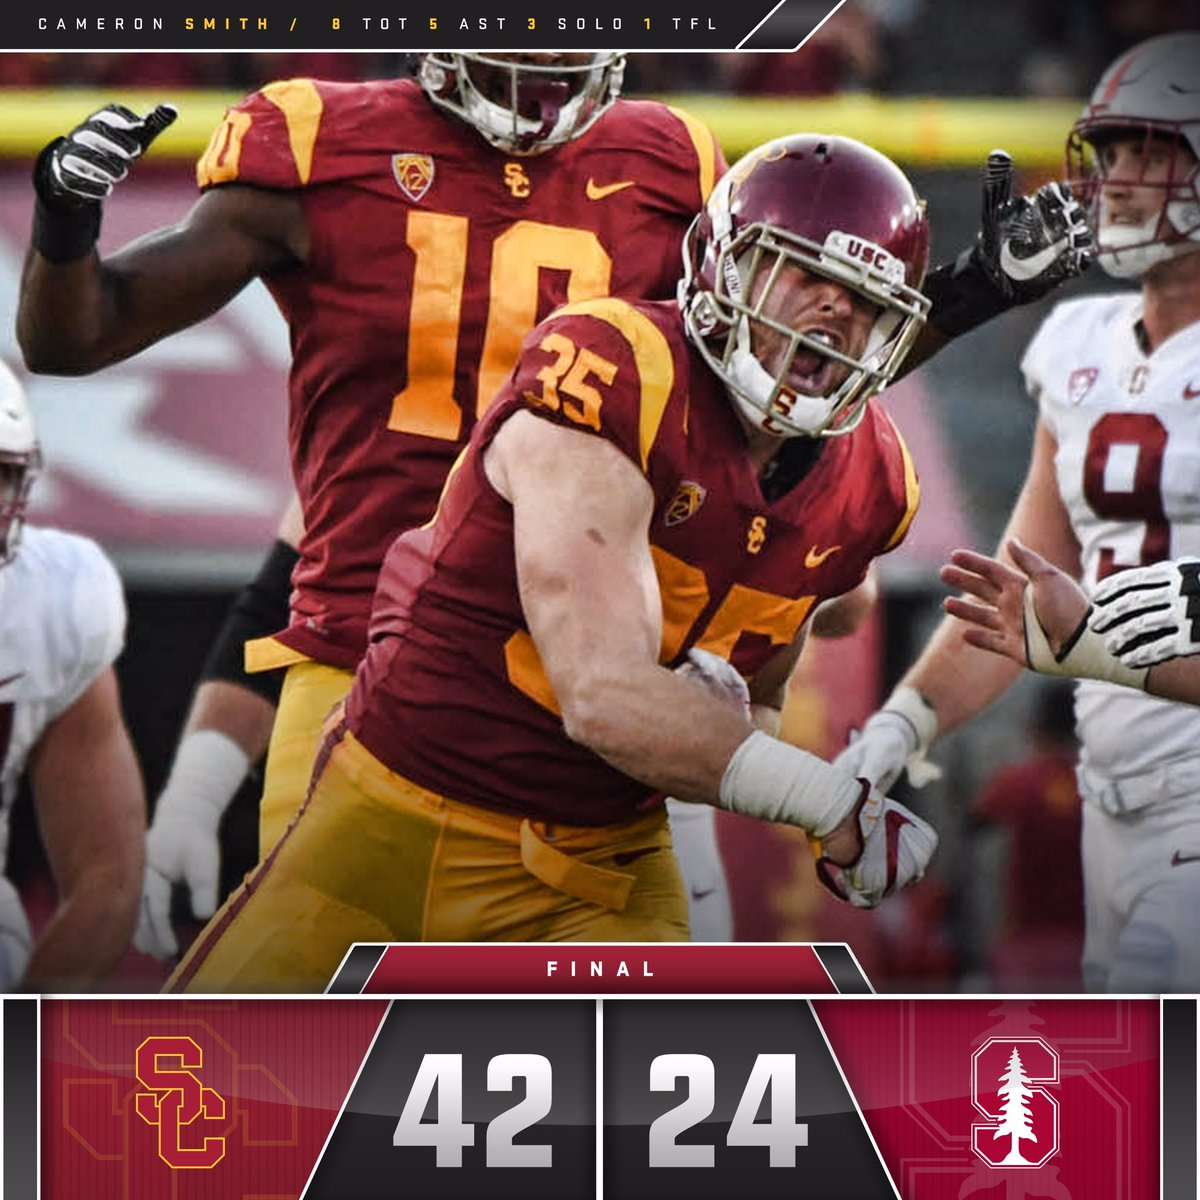 FINAL: USC 42, Stanford 24.   The Trojans dominate their first Pac-12 game of the year!  #FightOn